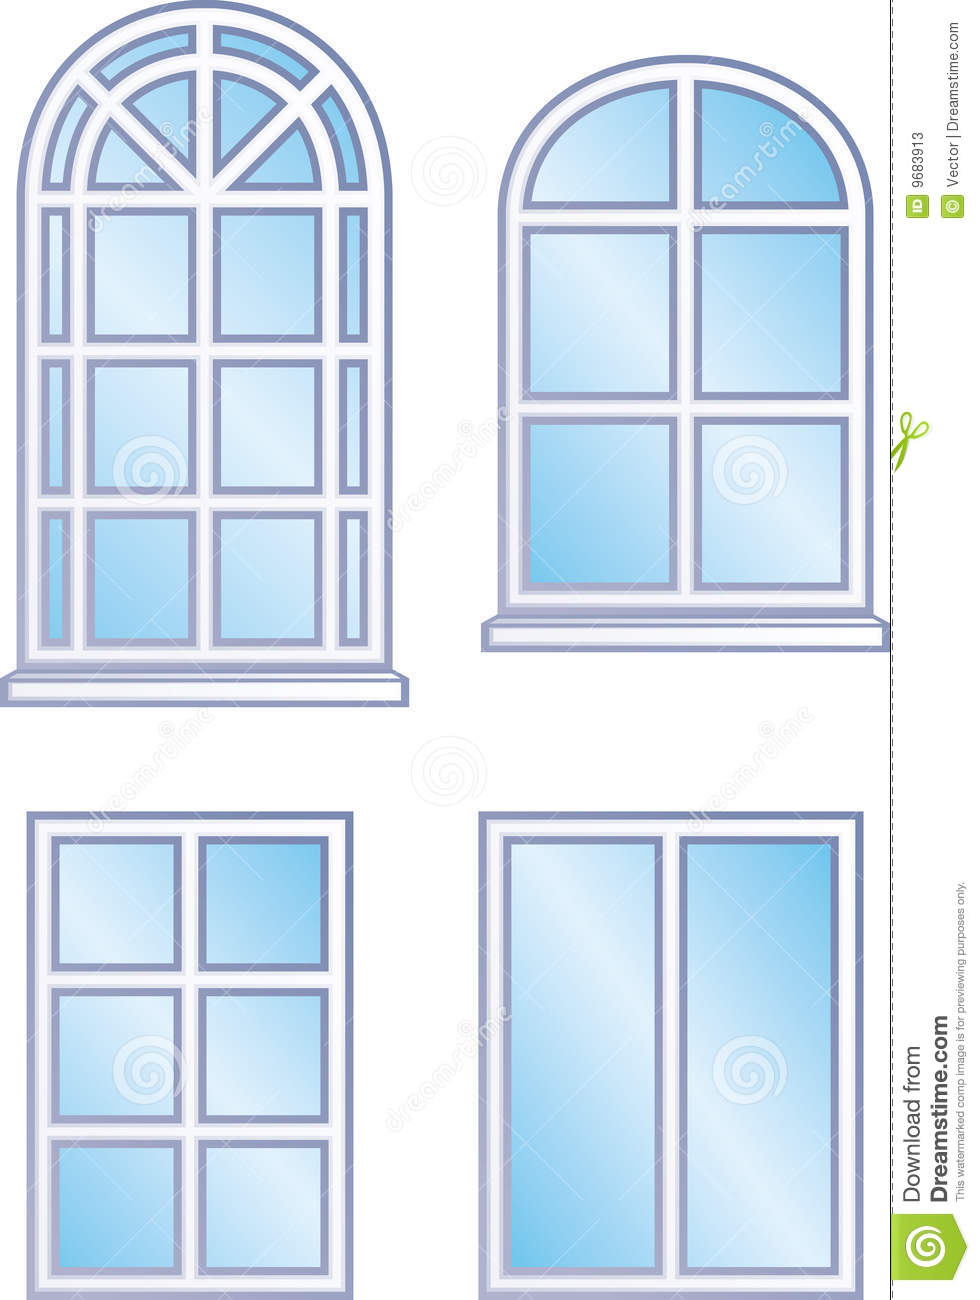 free clip art window frame - photo #36